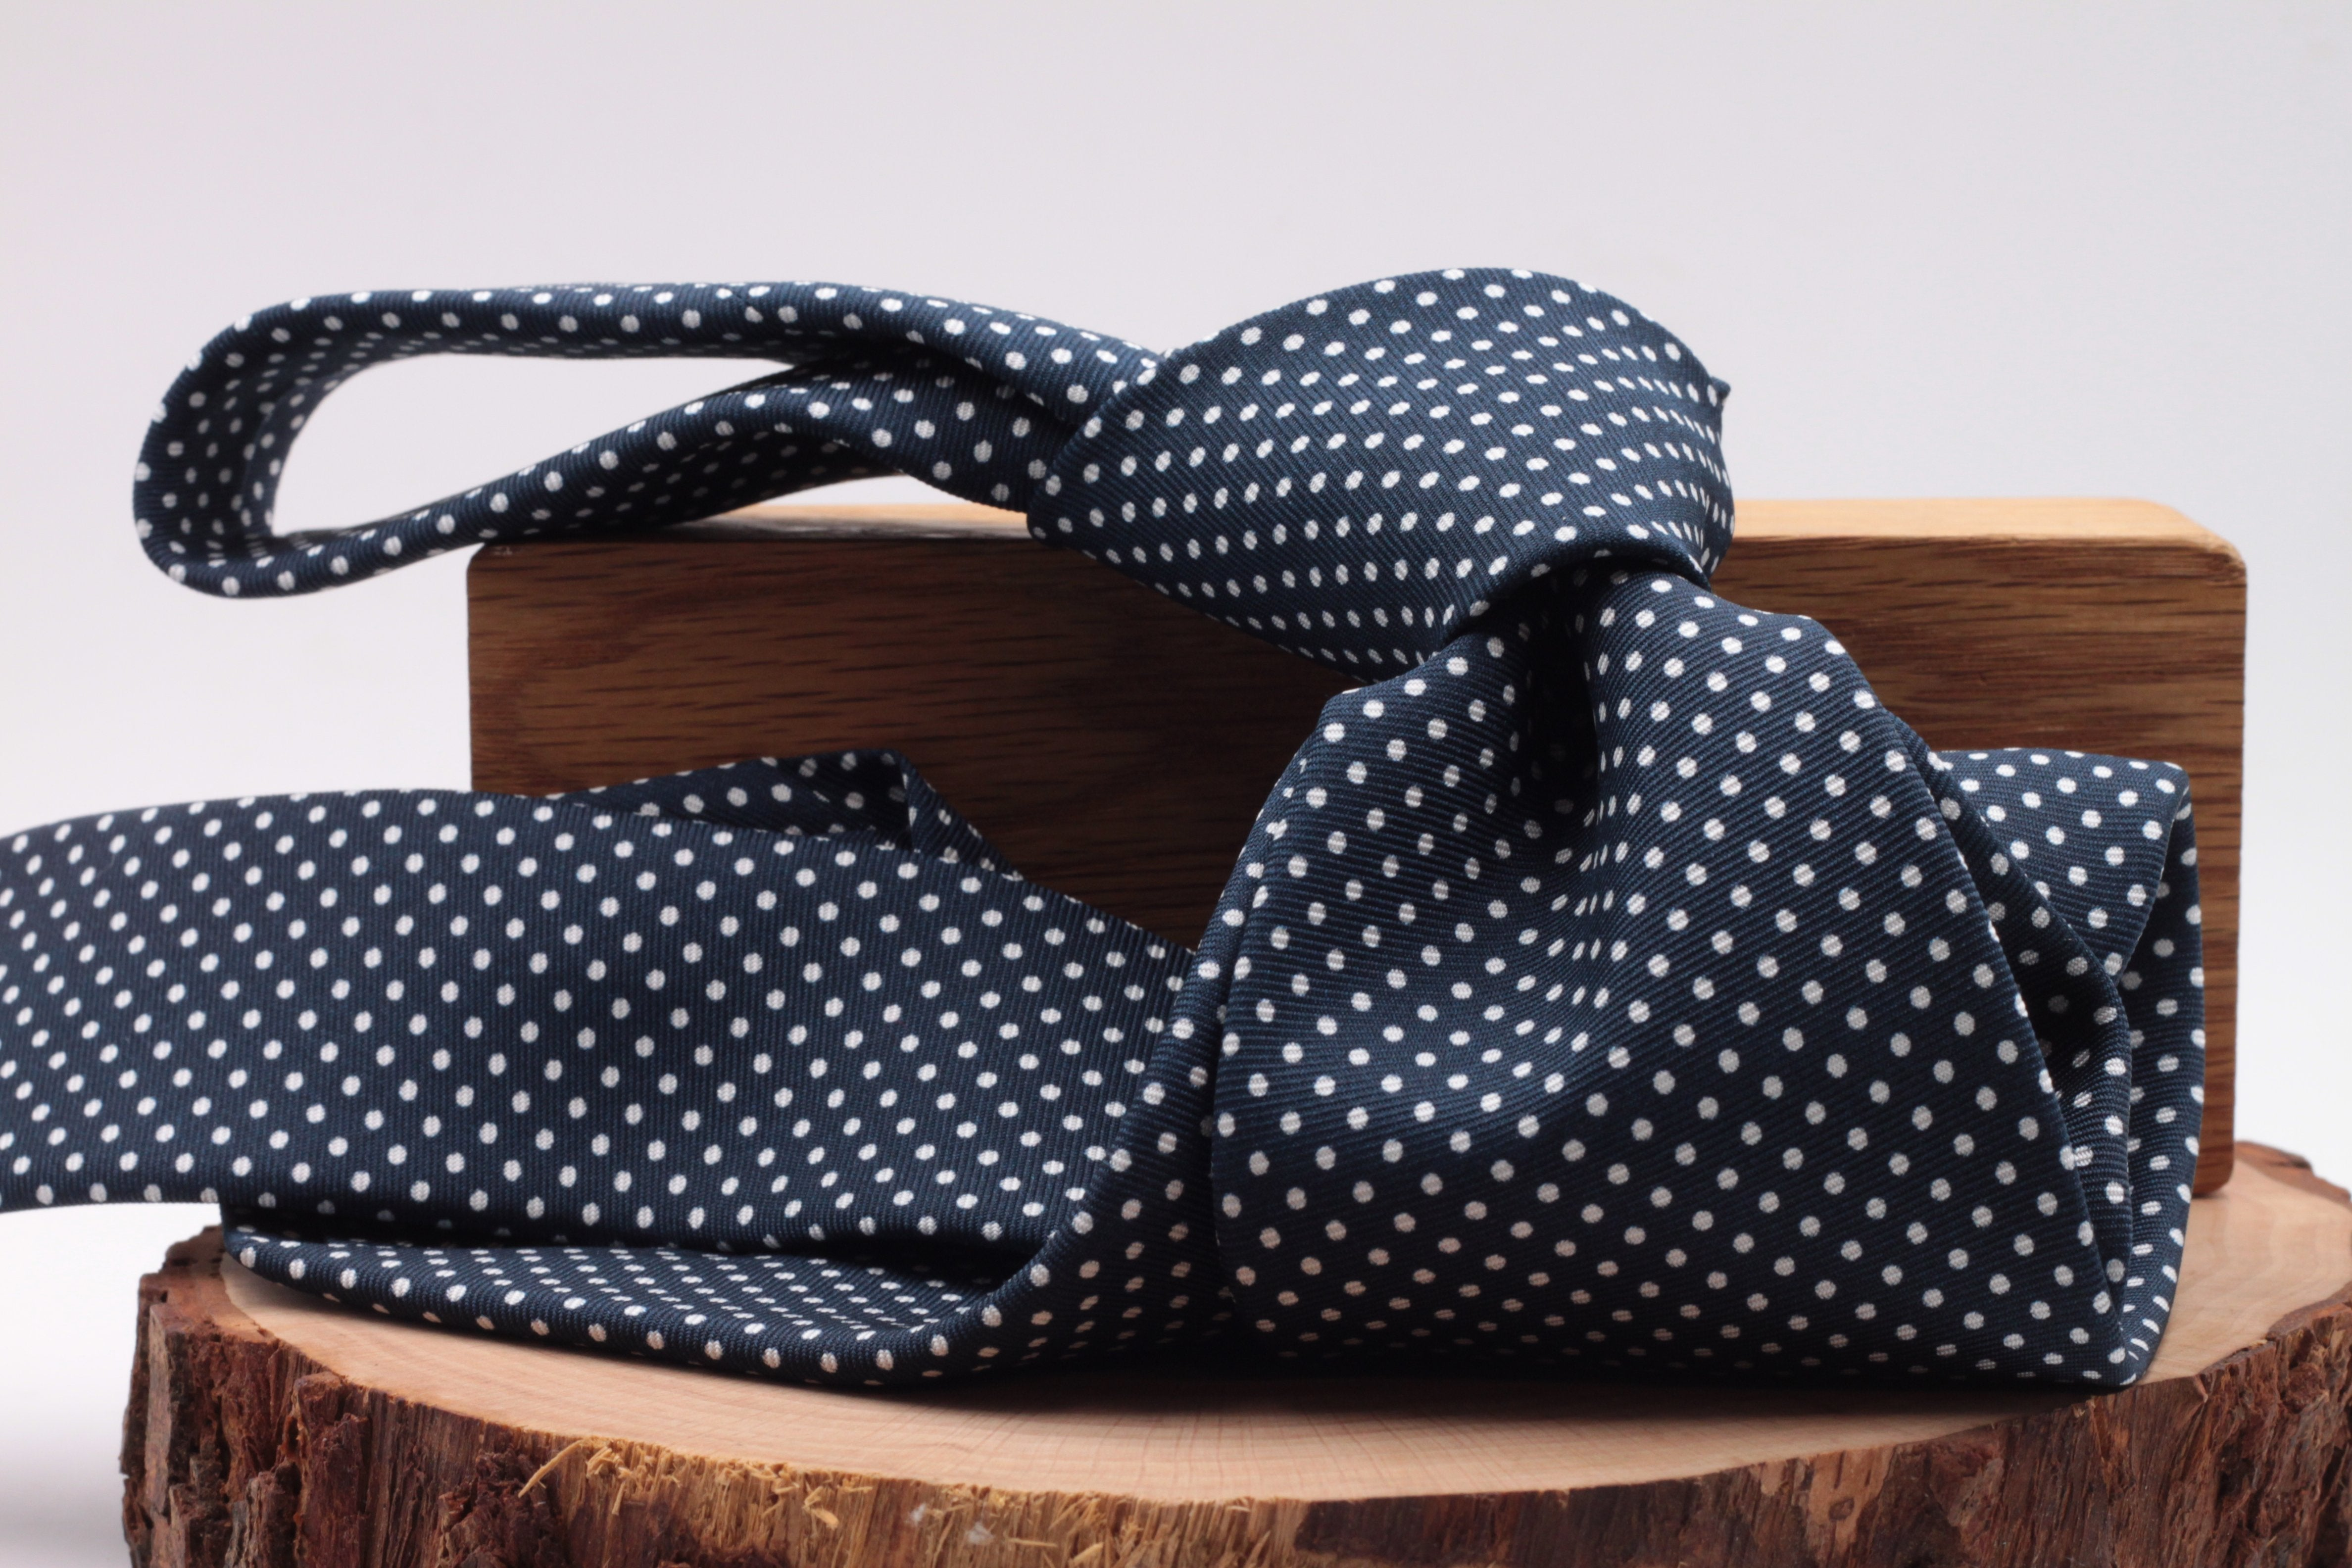 Holliday & Brown for Cruciani & Bella 100% printed Silk Self tipped Blue navy, white dots tie Handmade in Italy 8 cm x 150 cm